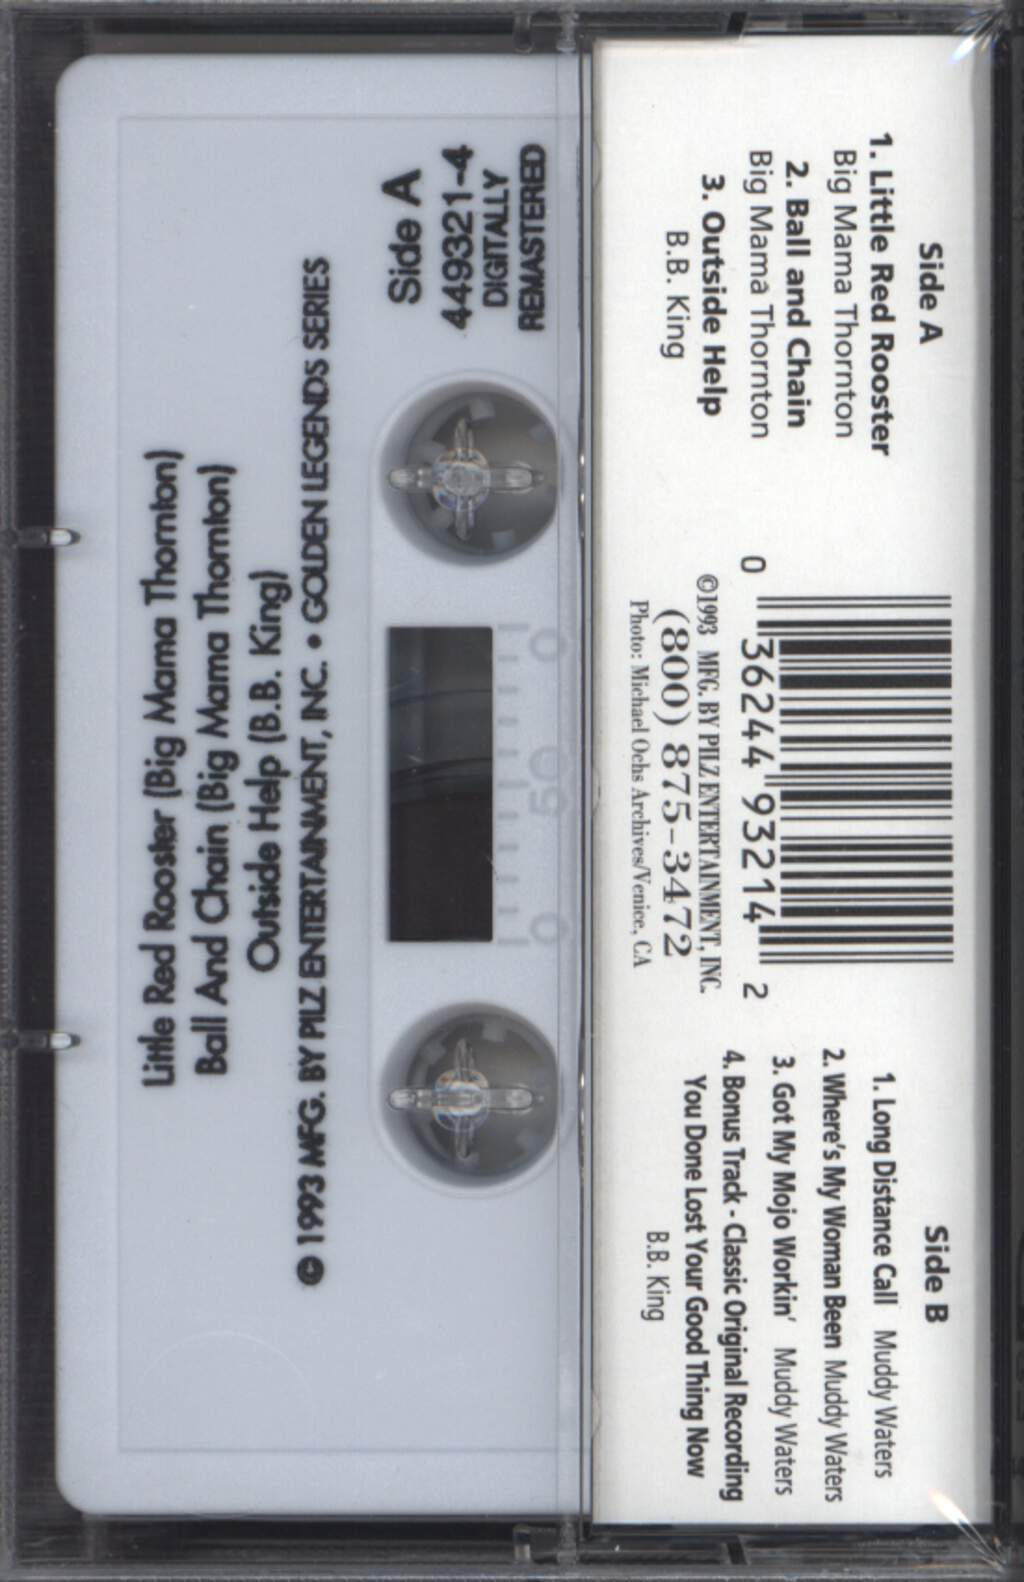 B.B. King: Live At Newport, Compact Cassette